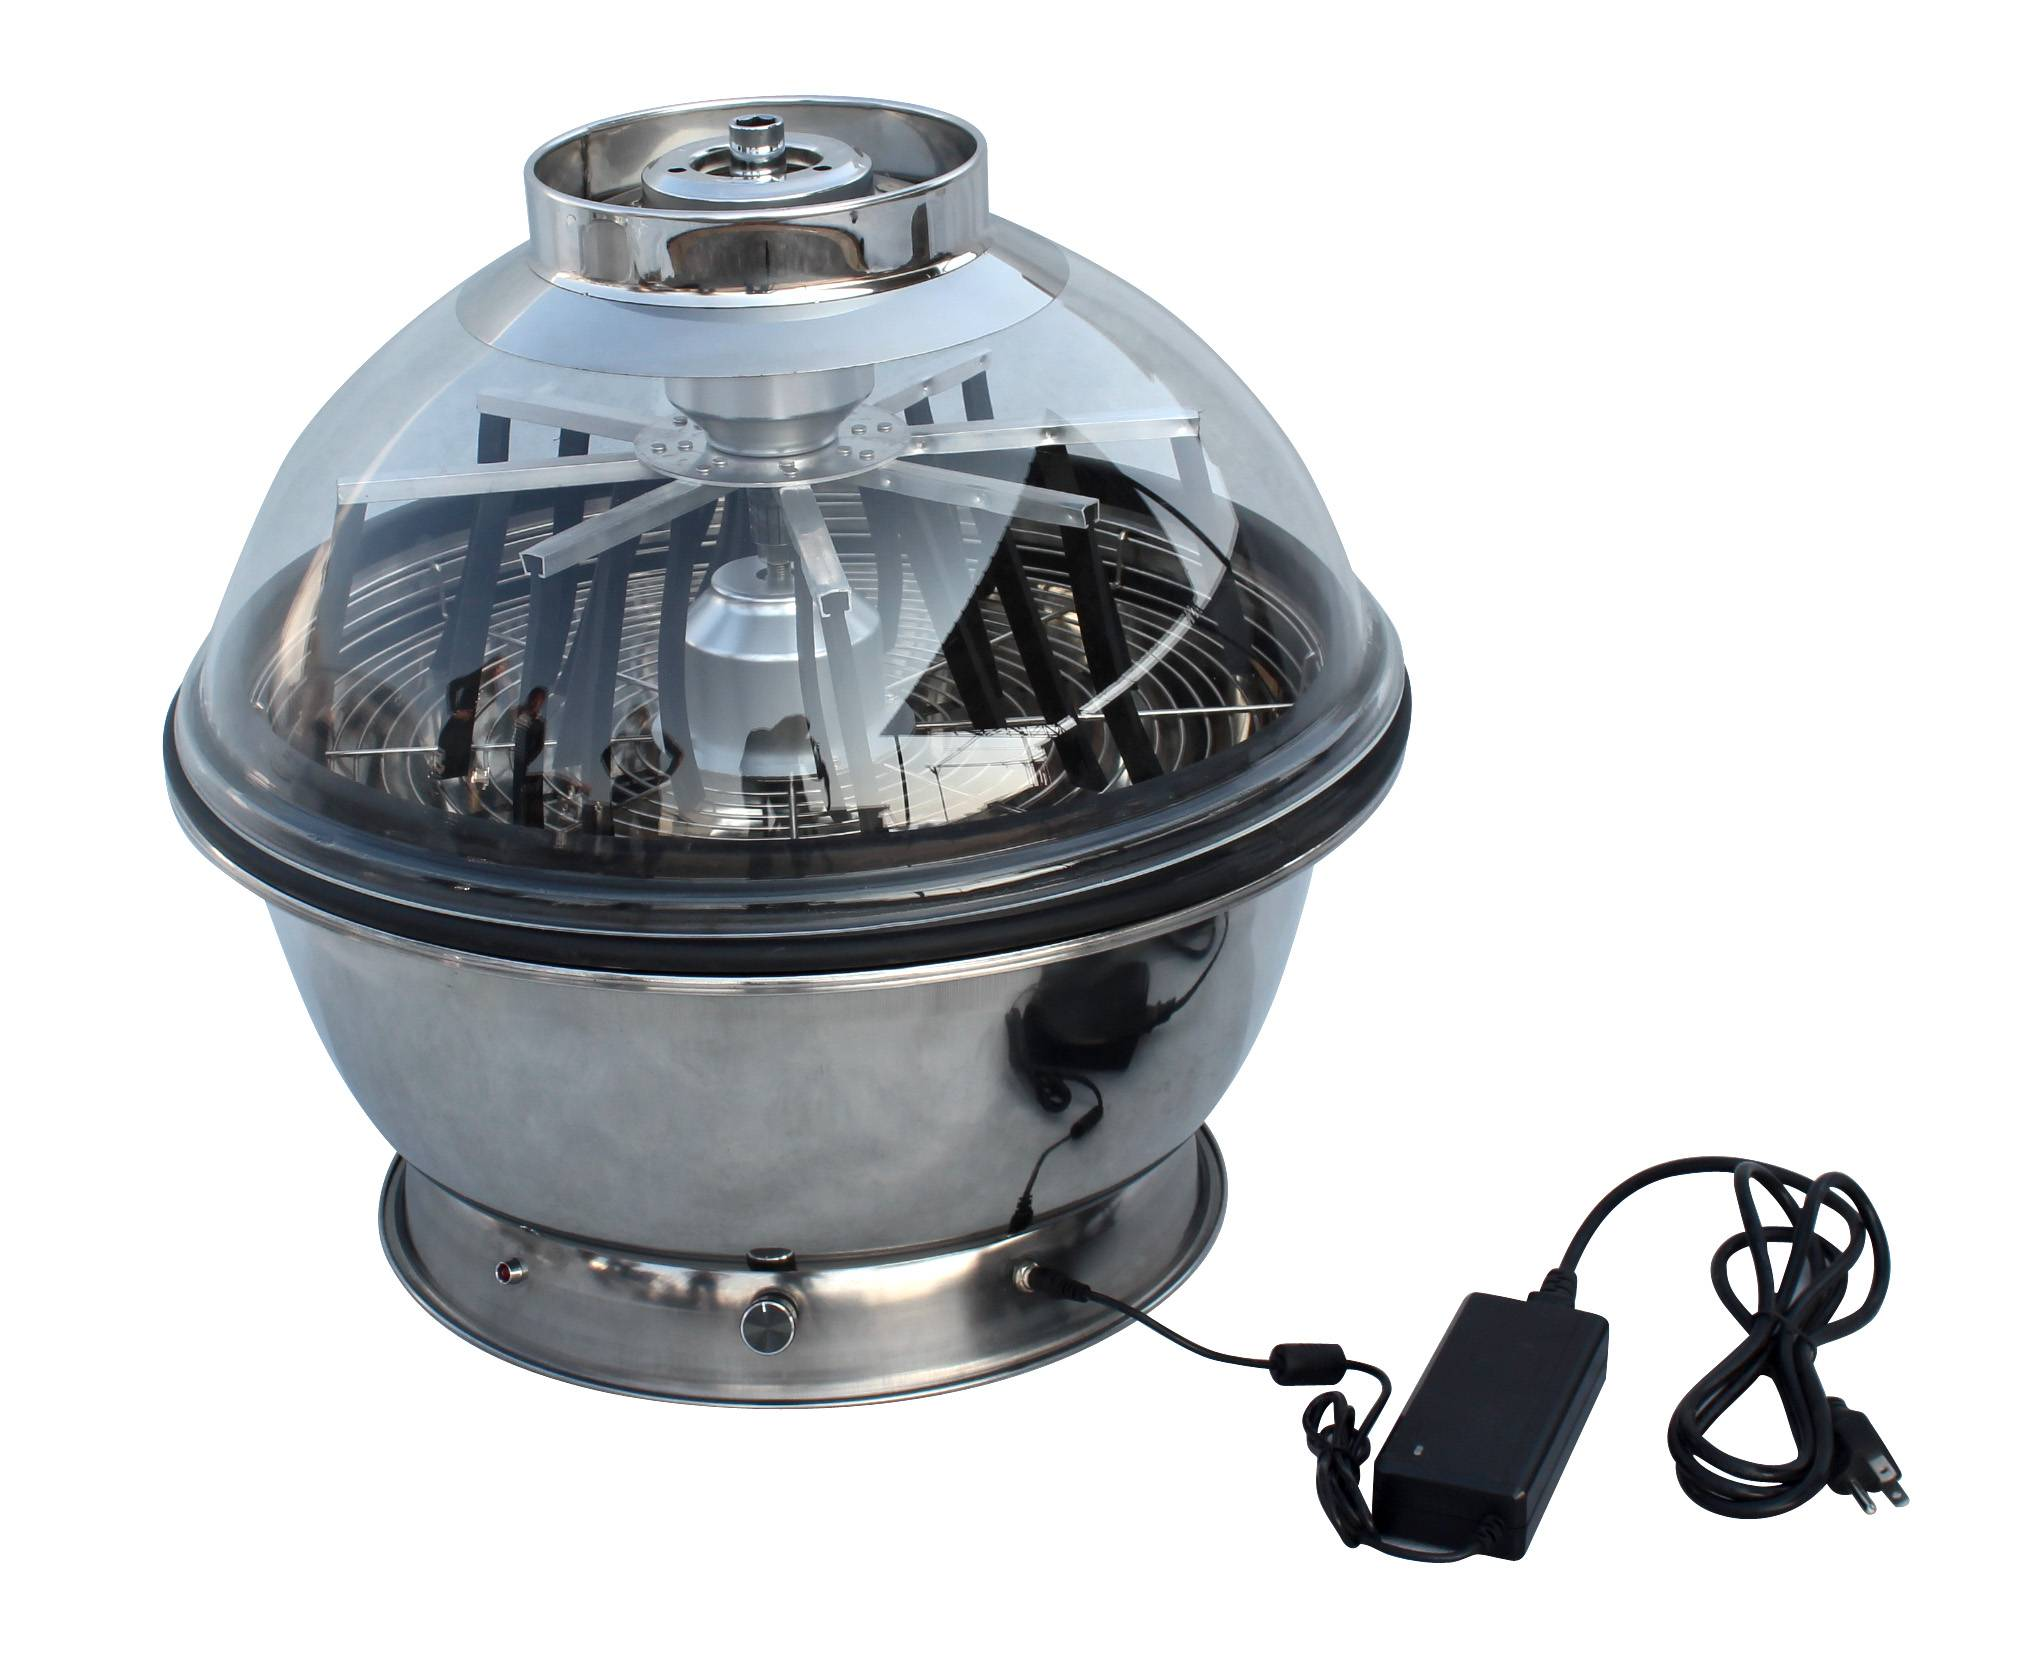 ECO Clear Top Motorized Bowl Trimmer Bud Trimmer